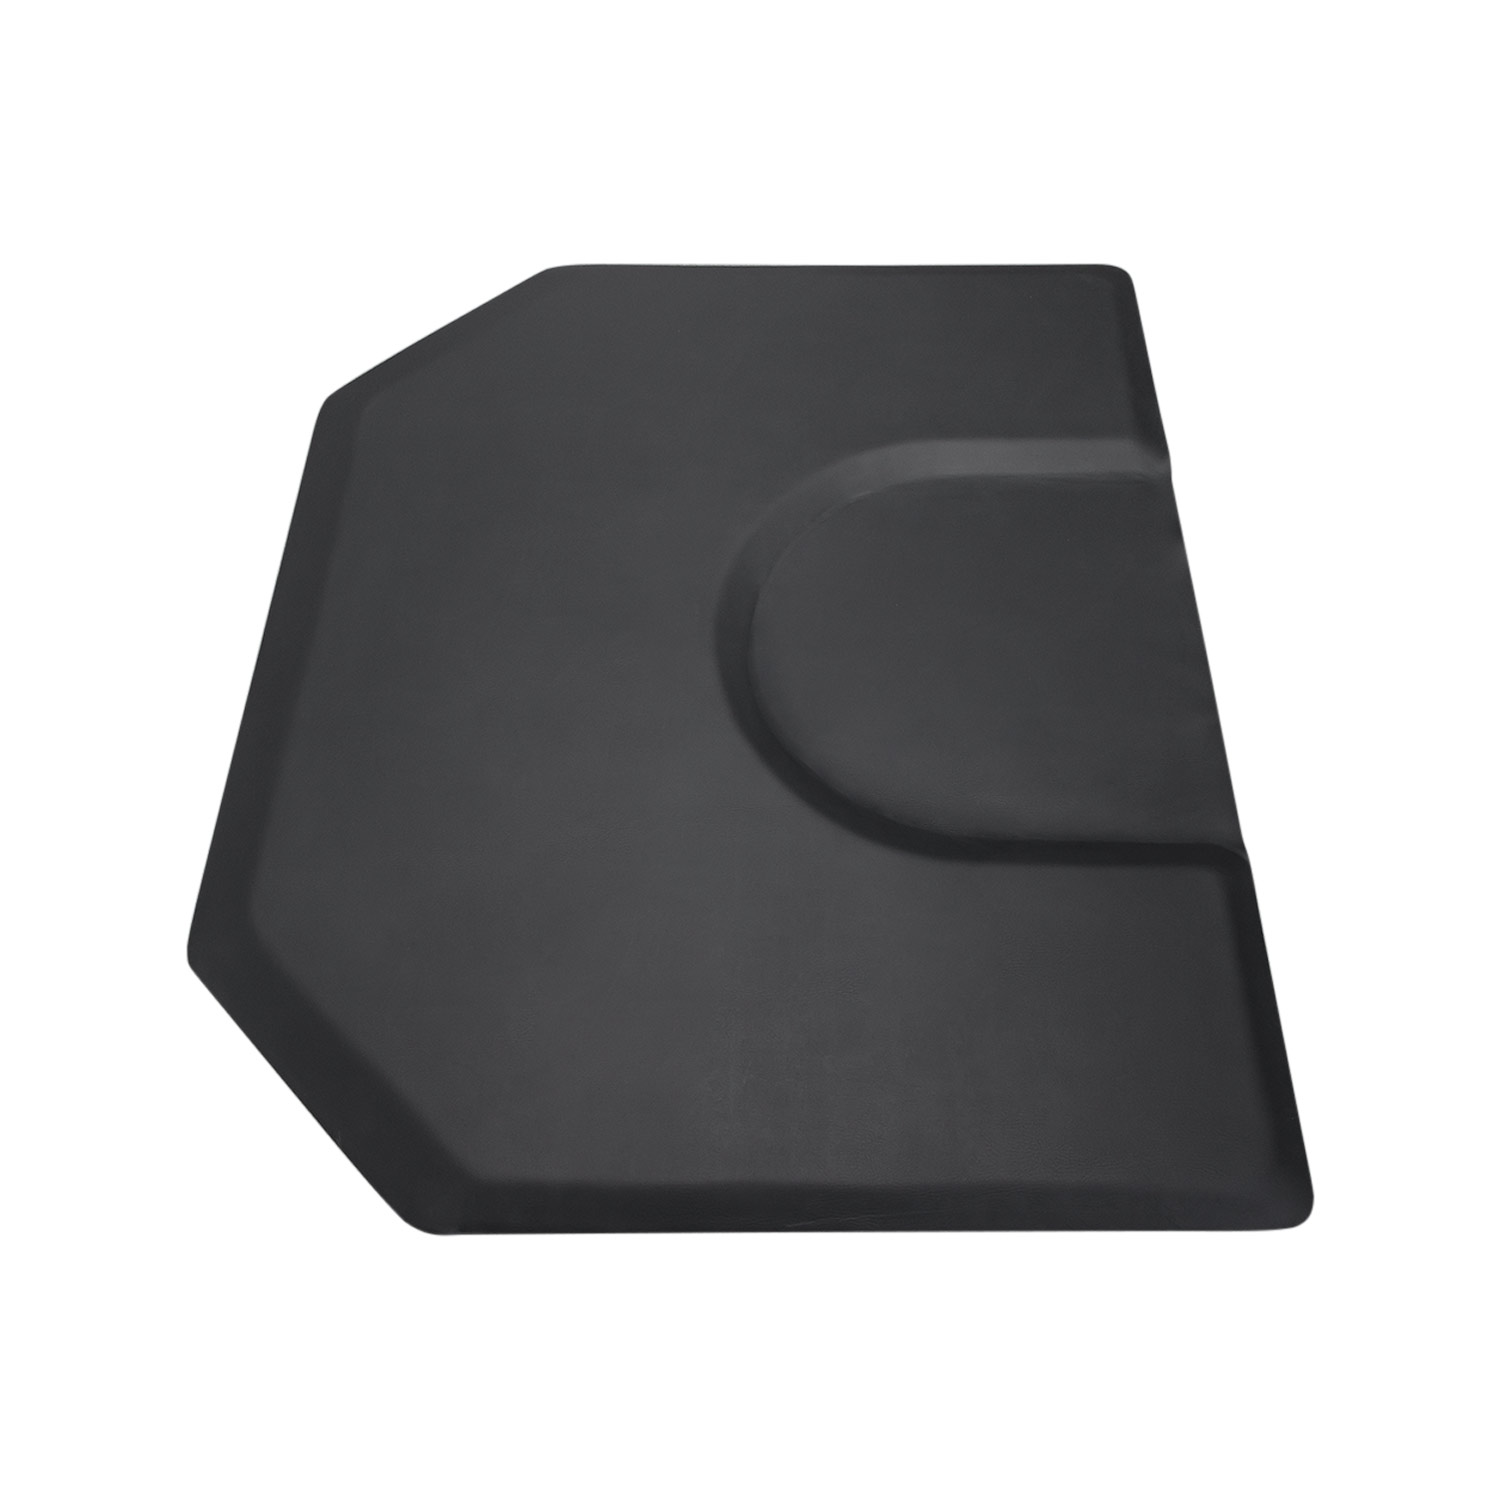 Hexagon 4x5 Salon Anti-Fatigue Mat Round Impression alternative product image 1